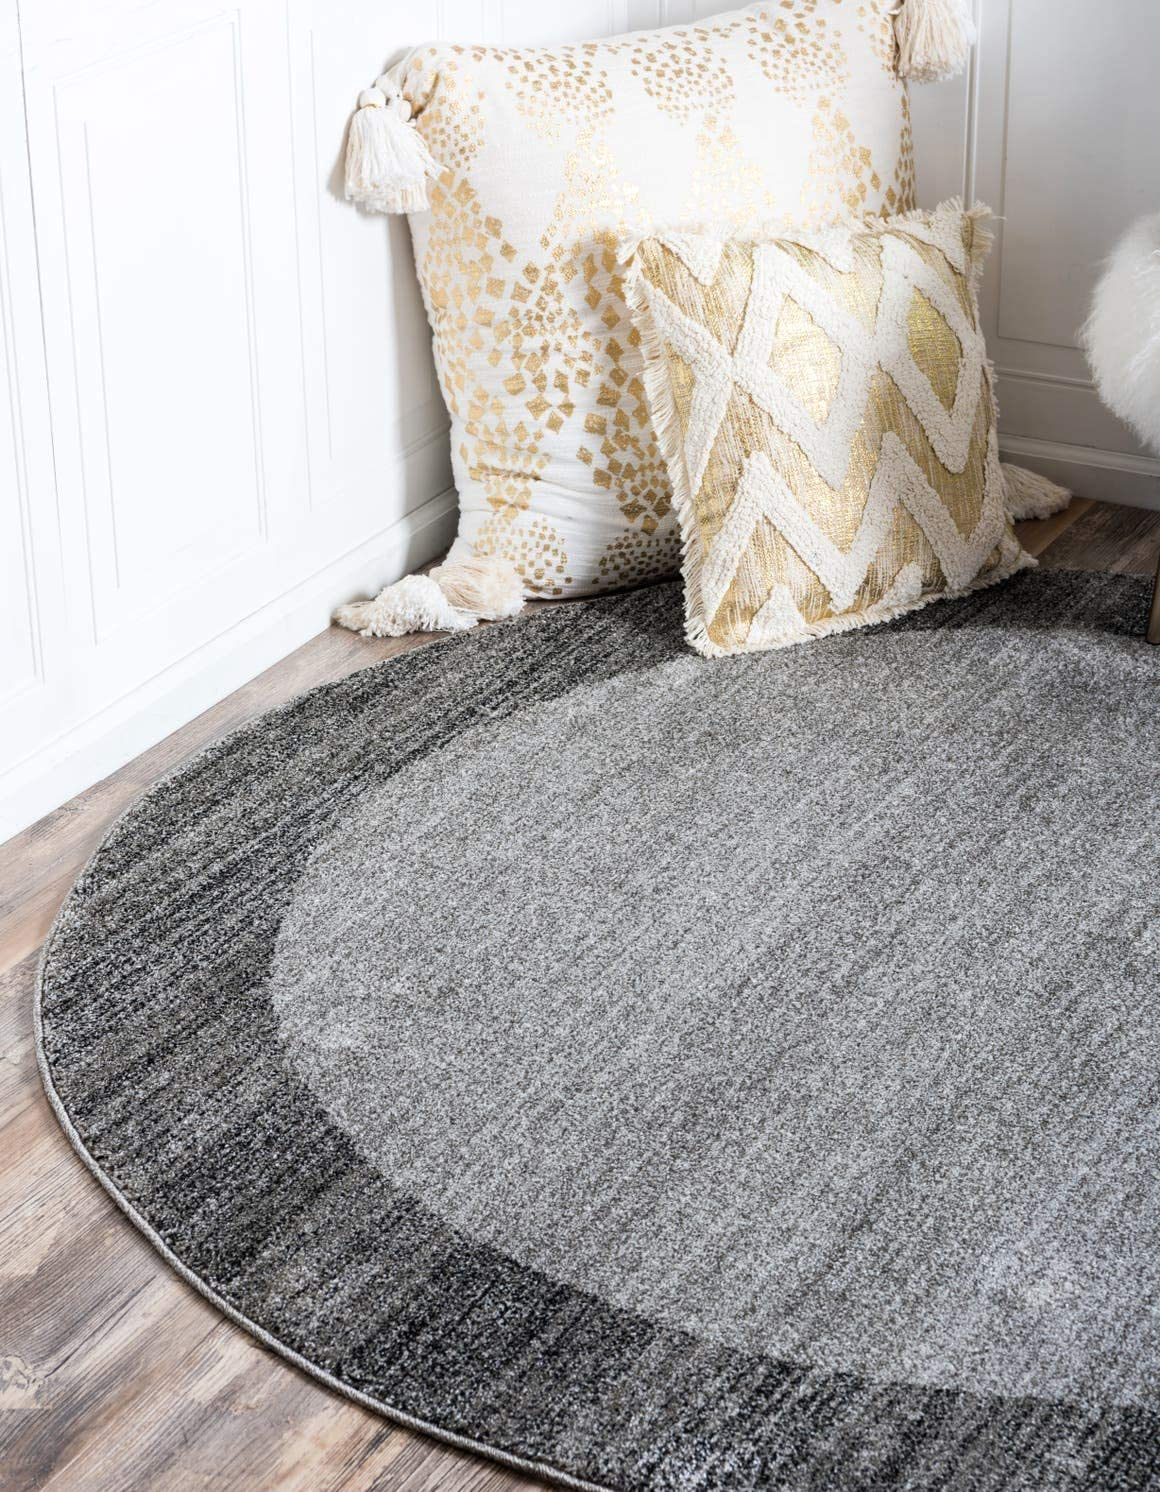 Unique Loom Del Mar Collection Contemporary Transitional Light Gray Round Rug 8 0 x 8 0